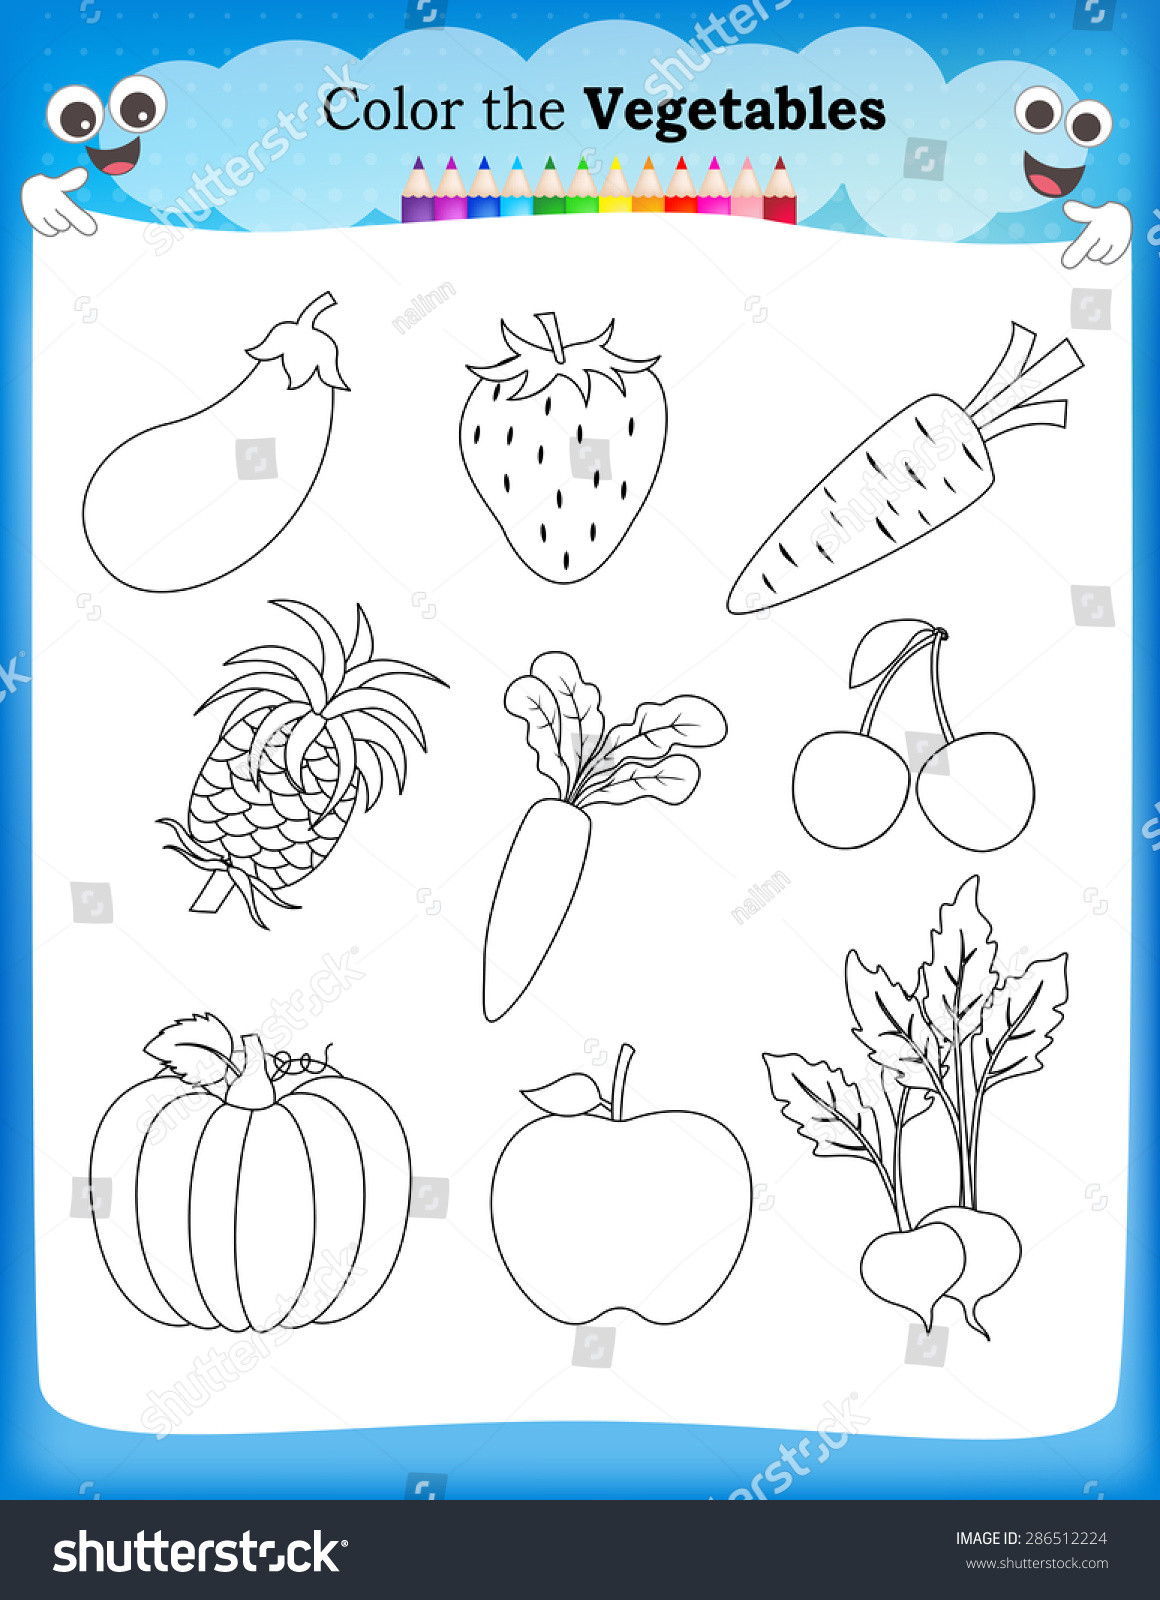 Preschool Fruits and Vegetables Worksheets Ve Ables Fruits Worksheets Search